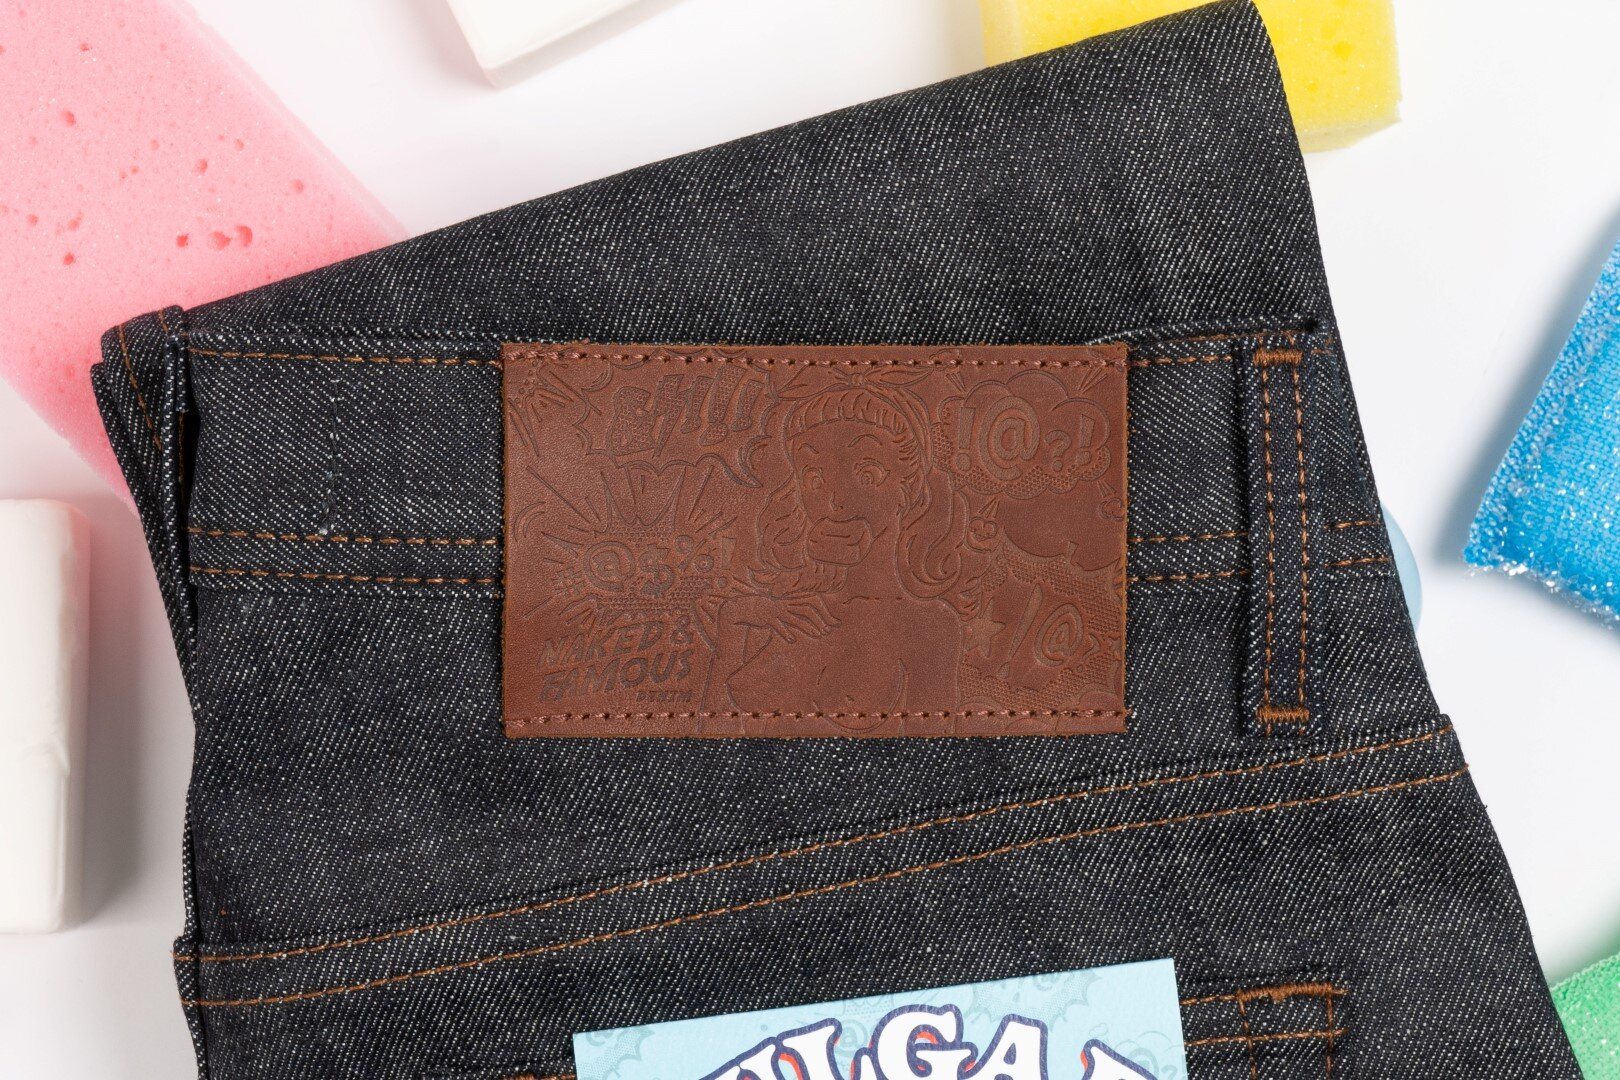 Vulgar Selvedge 2 - Leather Patch